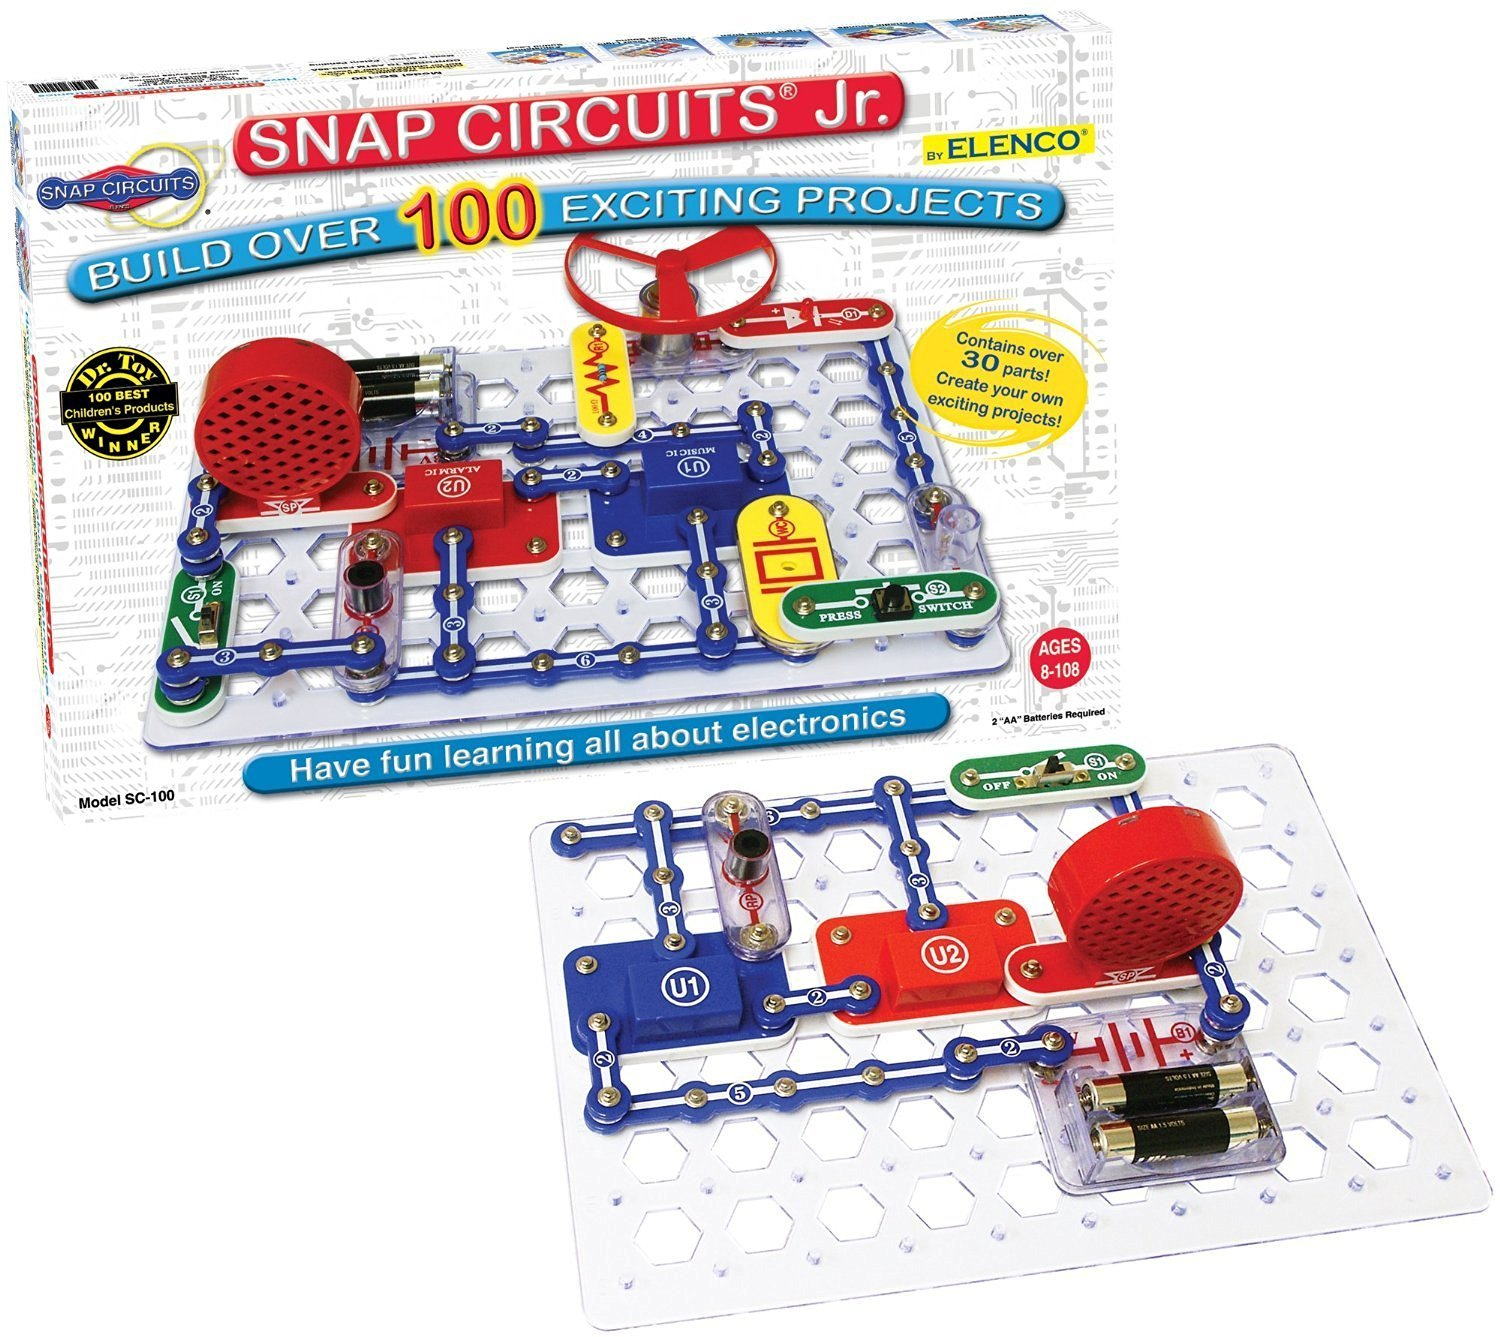 Snap Circuits Jr. SC-100 Electronics Discovery Kit CustomerPackageType: Frustration-Free Packaging, Model: SC-100B, Toys & Play